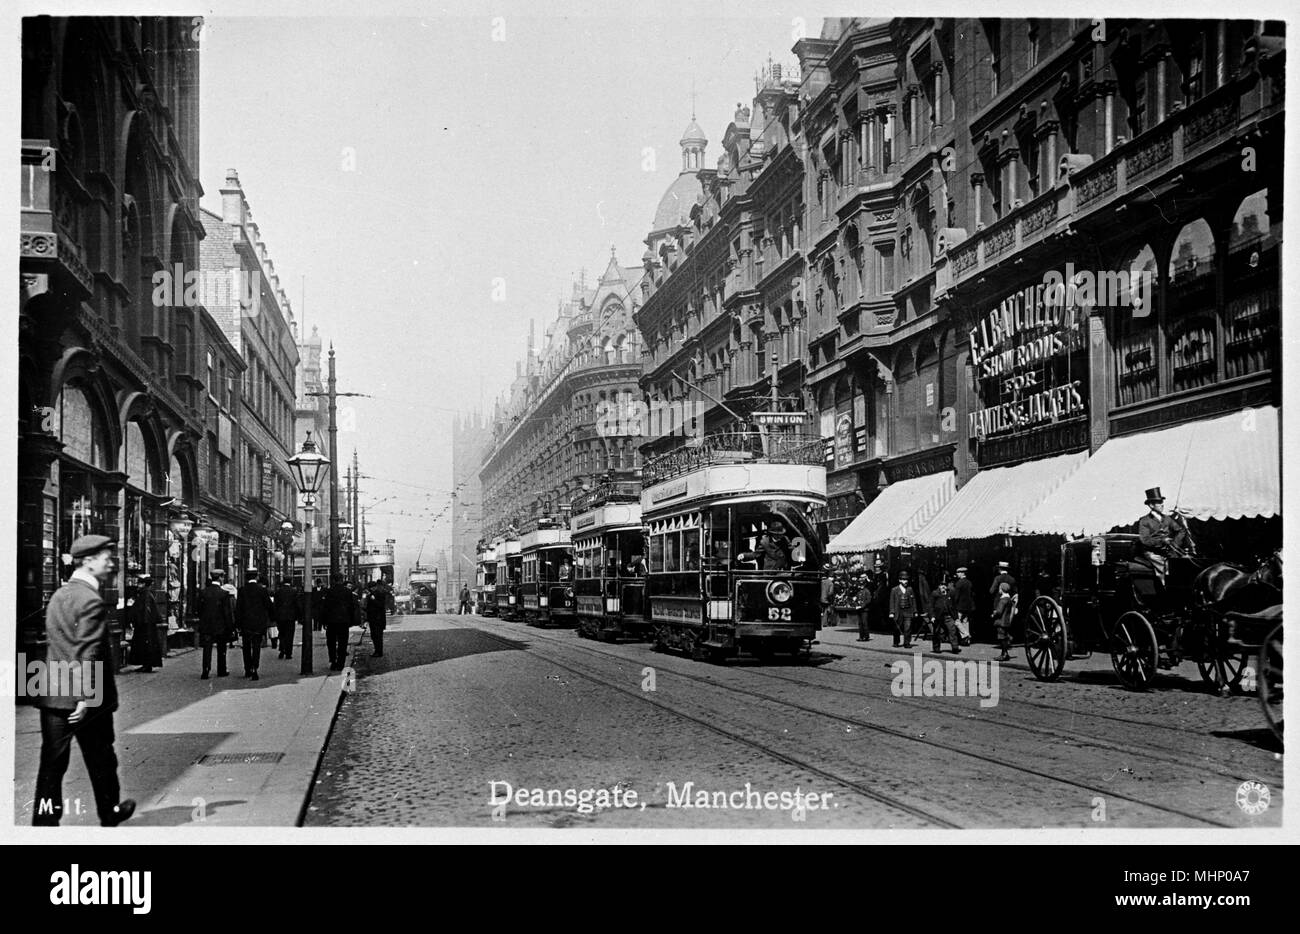 Deansgate, Manchester, with a line of trams in the middle, and the Batchelor Showrooms on the right.      Date: circa 1920s - Stock Image